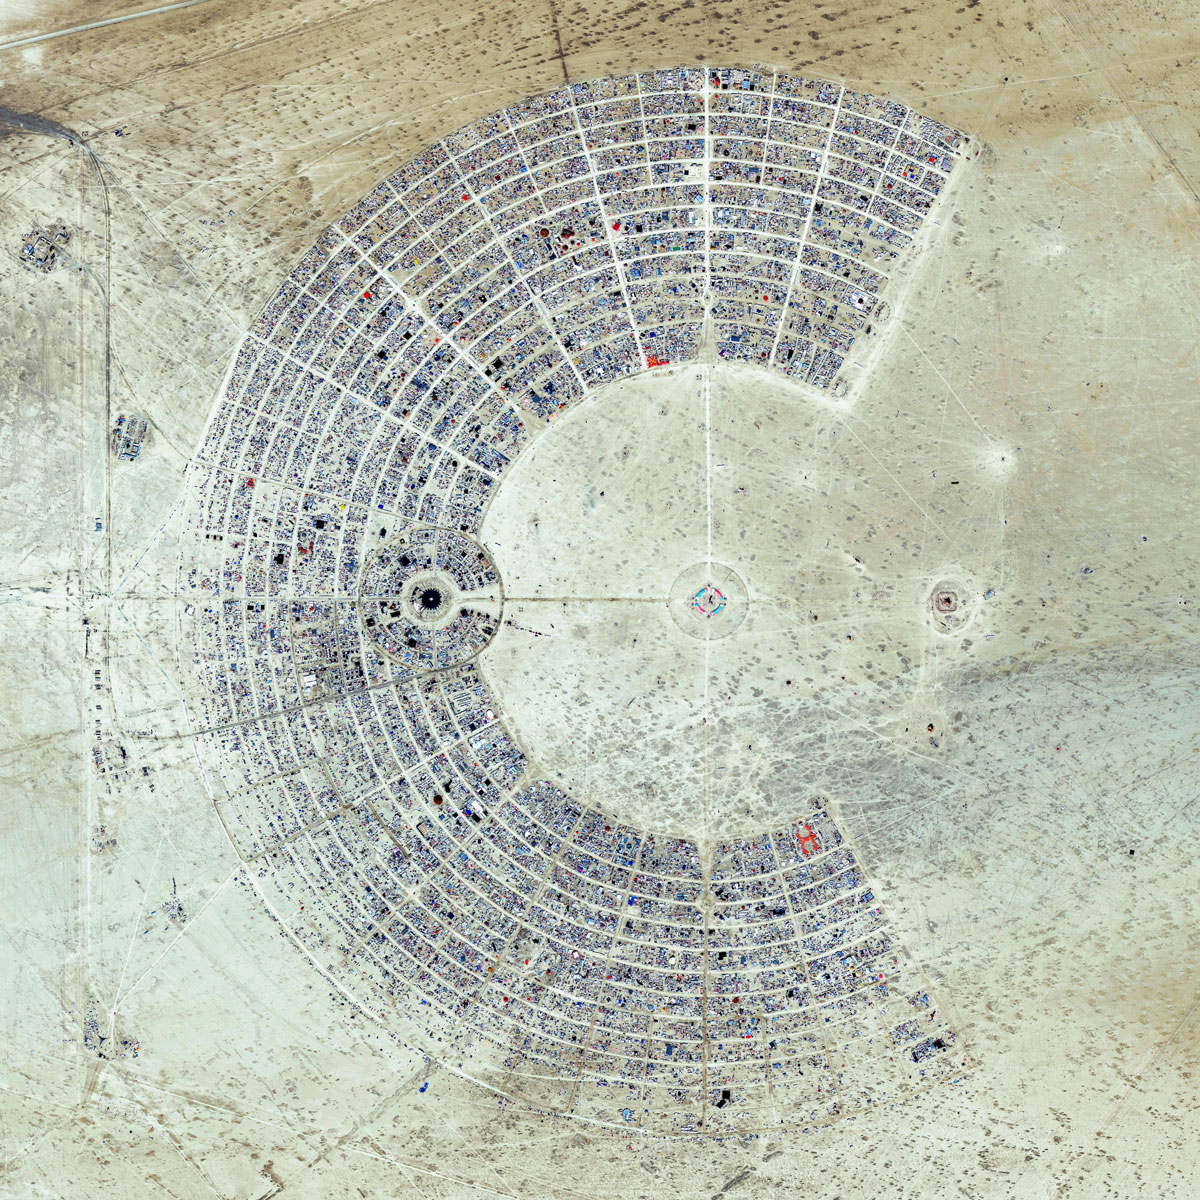 21 burning man 15 High Res Photos That Will Give You a New Perspective on Earth